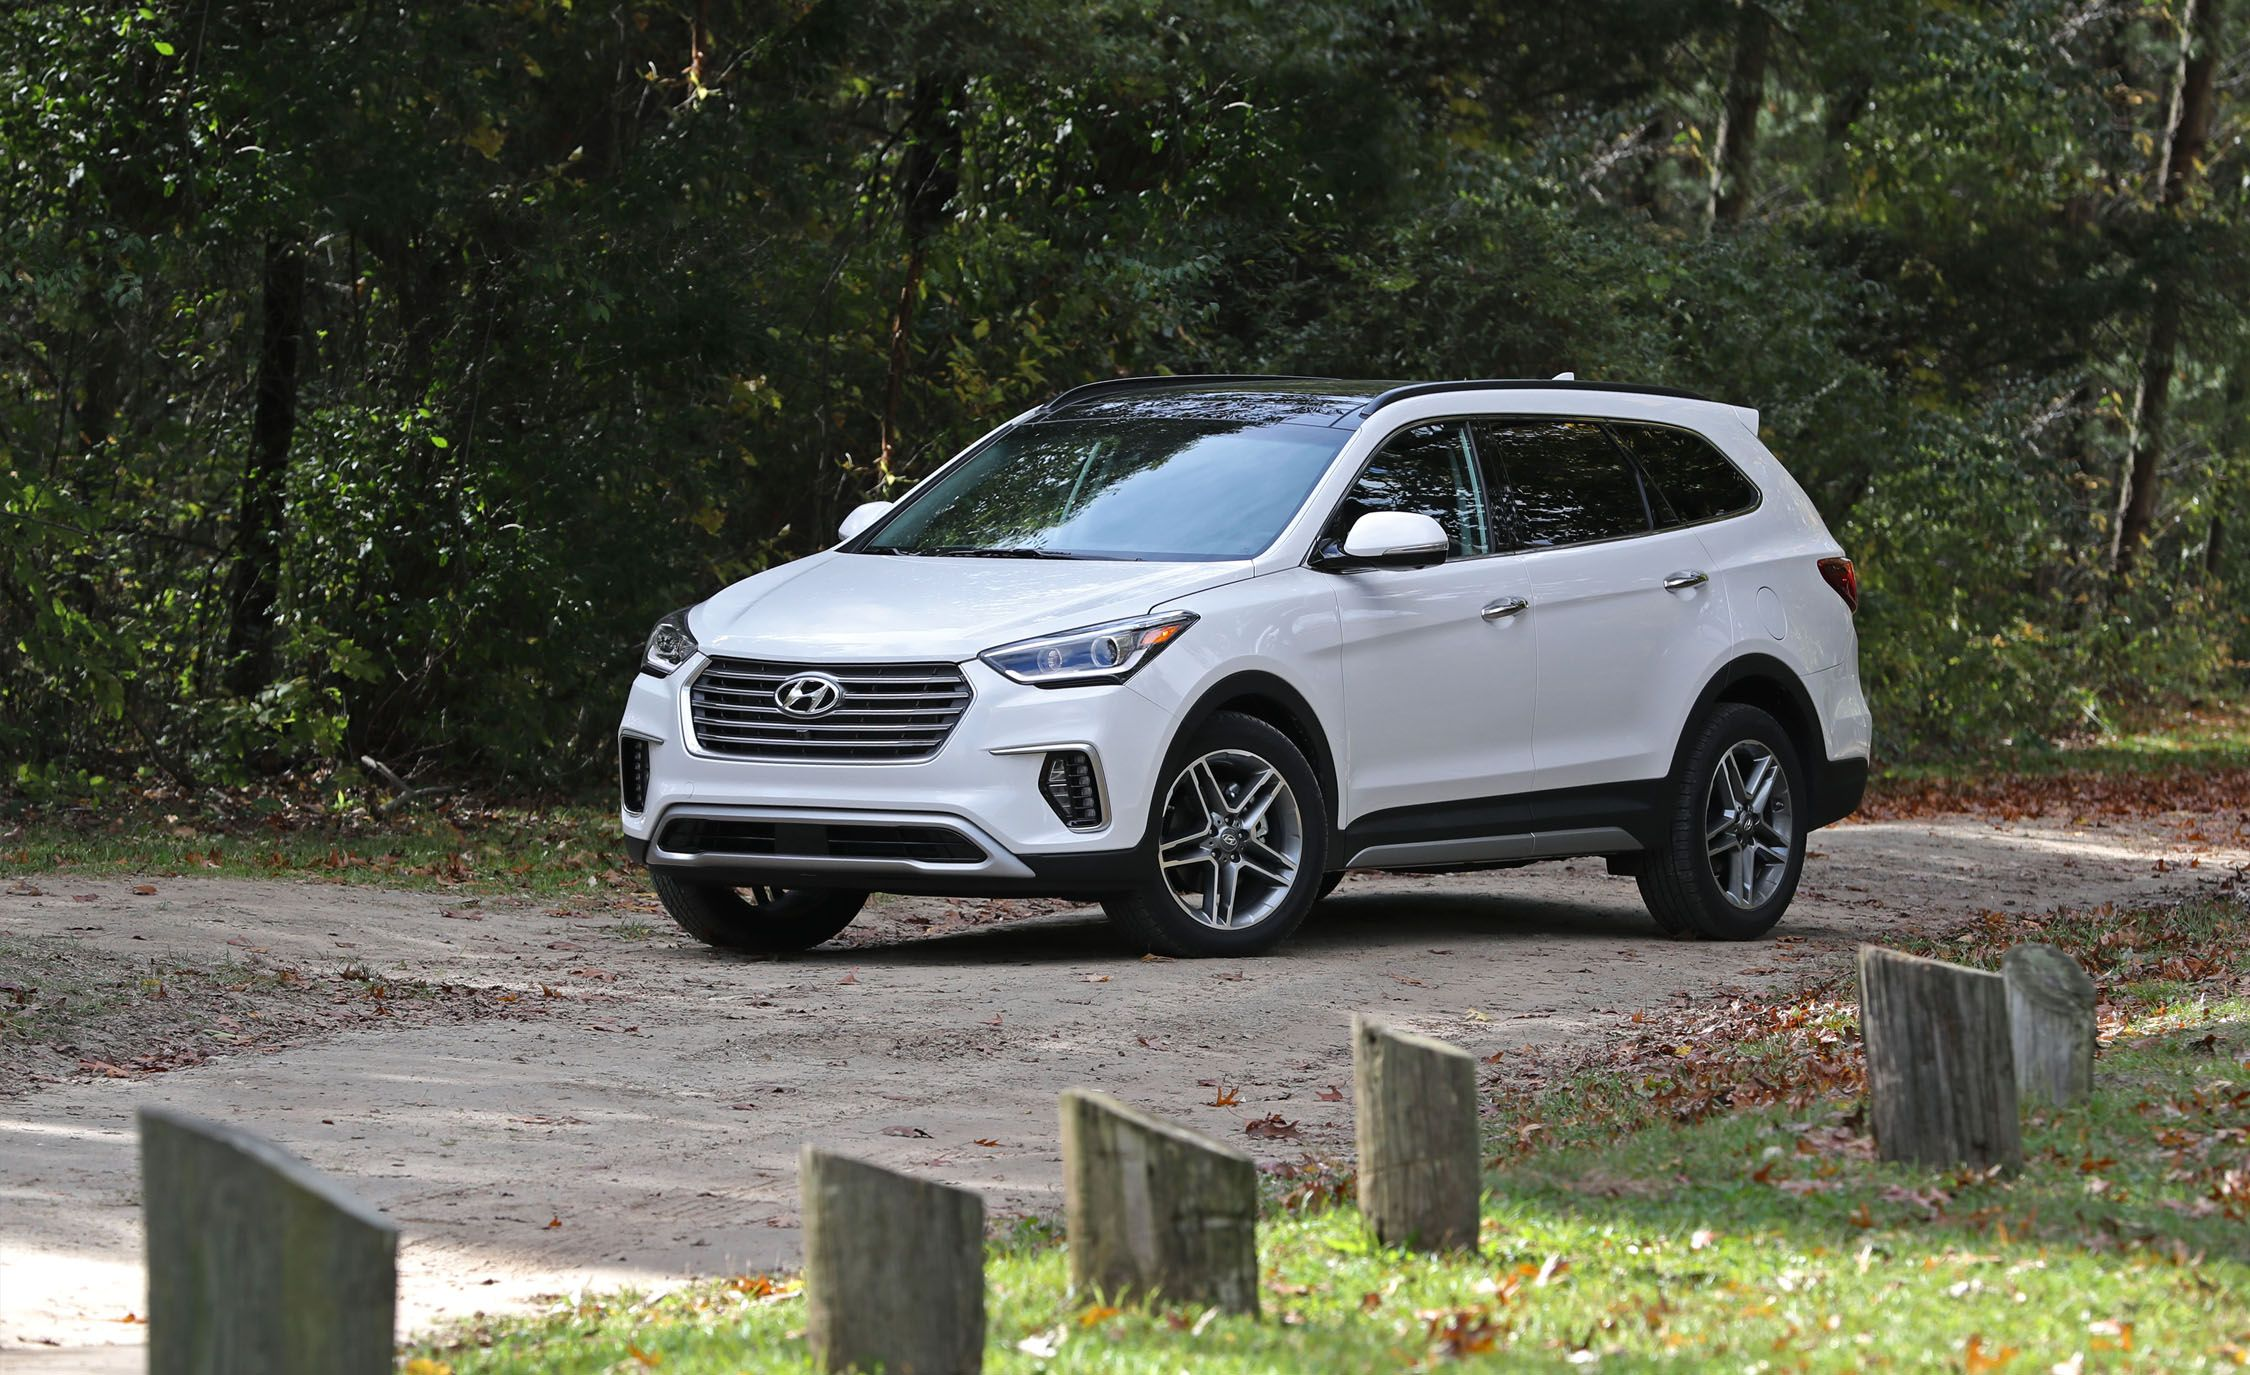 Hyundai Santa Fe Santa Fe Xl Reviews Hyundai Santa Fe Santa Fe Xl Price Photos And Specs Car And Driver